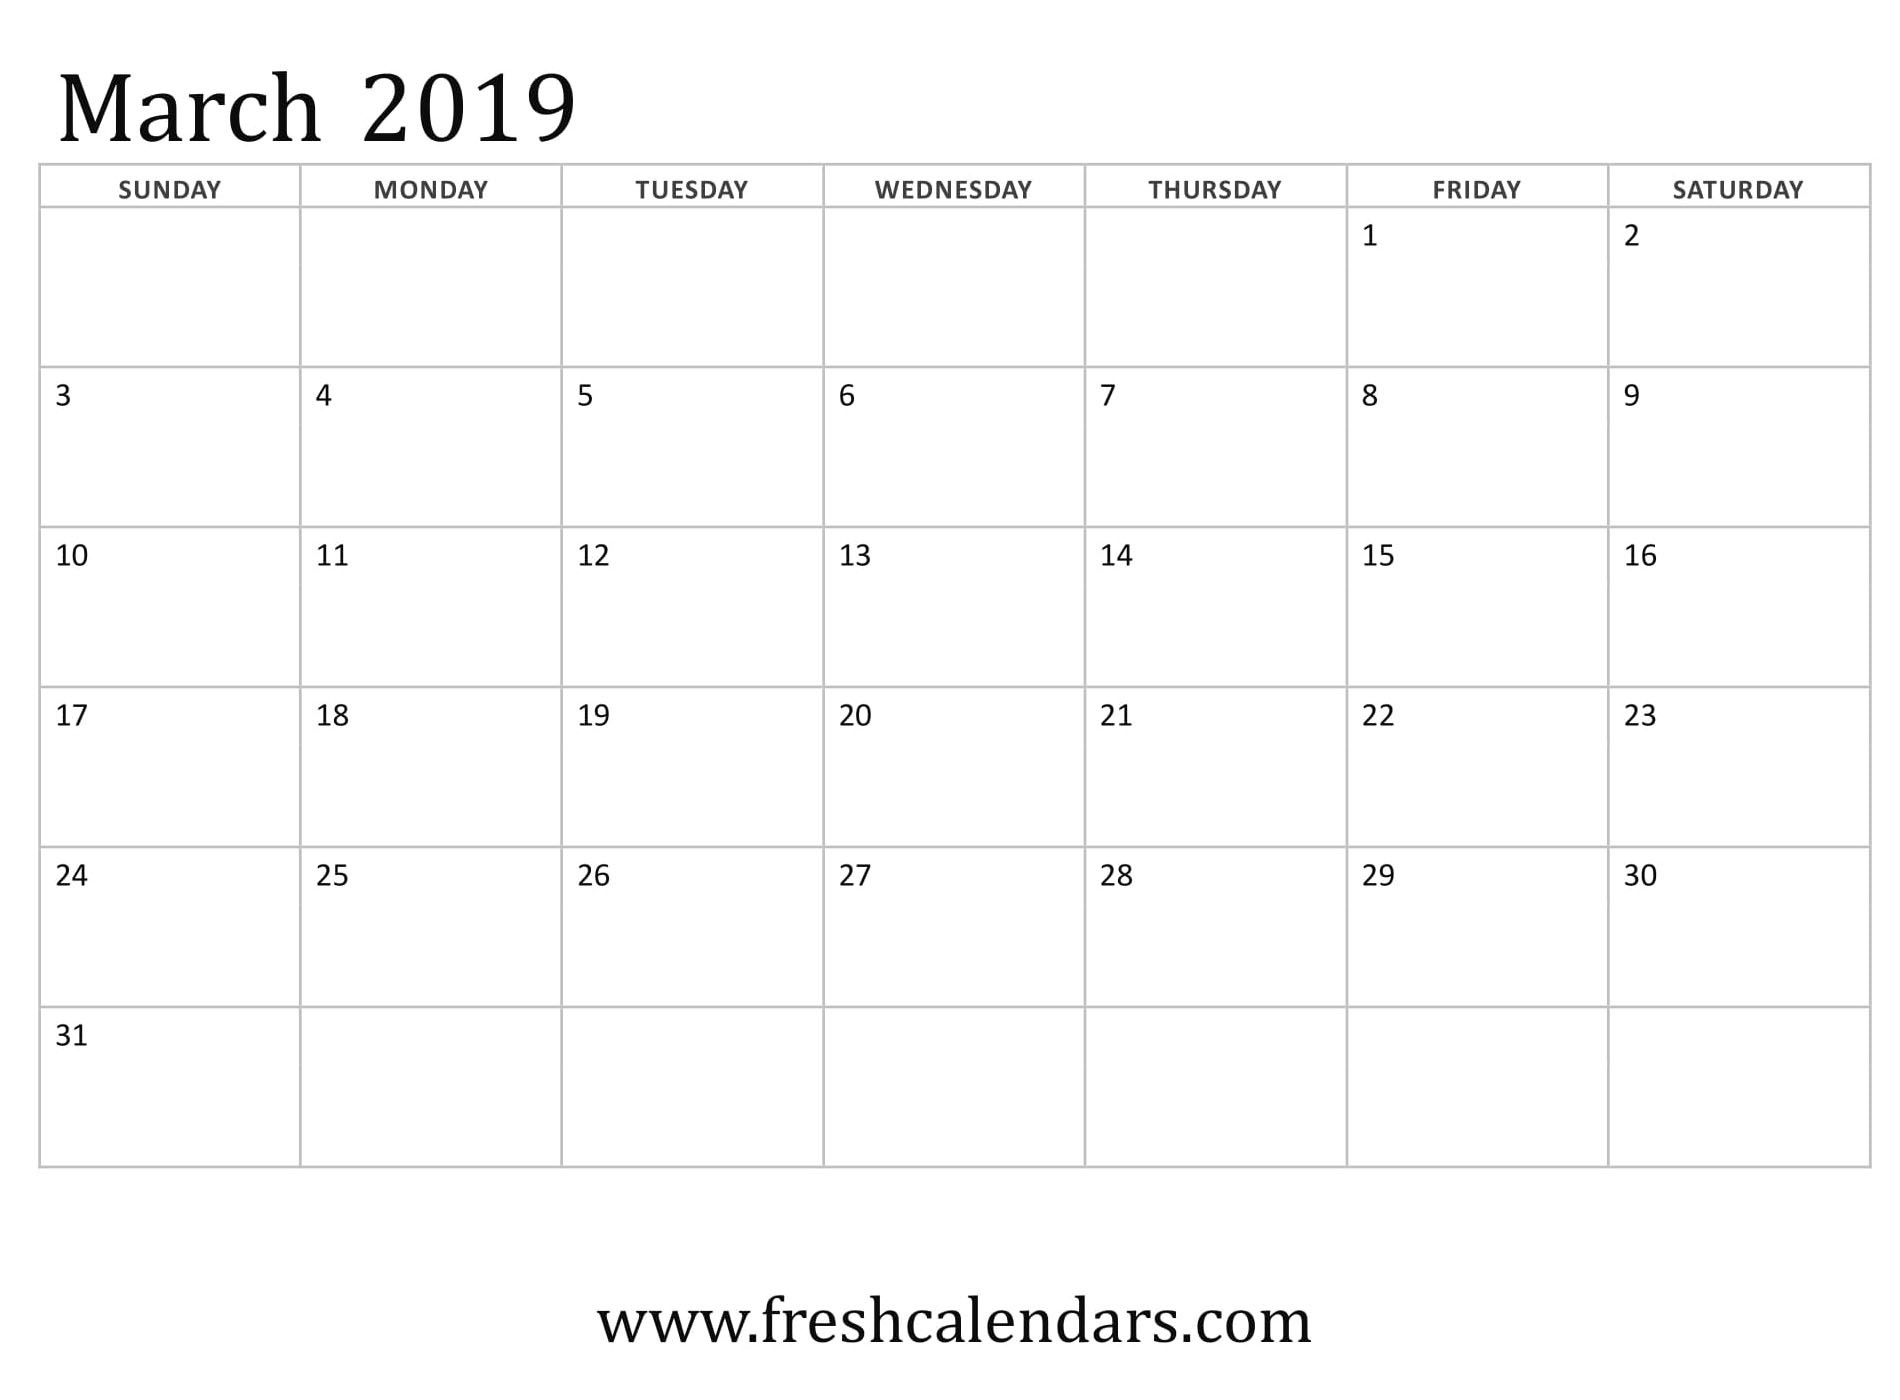 March Calendar 2019 Actual March 2019 Printable Calendars Fresh Calendars Of March Calendar 2019 Más Recientes March 2019 Wall Calendar Colorful Sketch Horizontal Template Letter